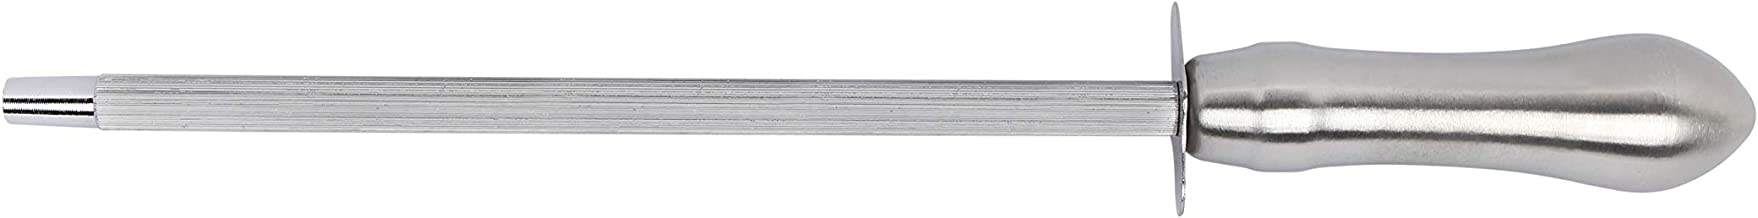 Wiltshire 41321 Wiltshire Stainless Steel Knife Sharpening Rod, Silver